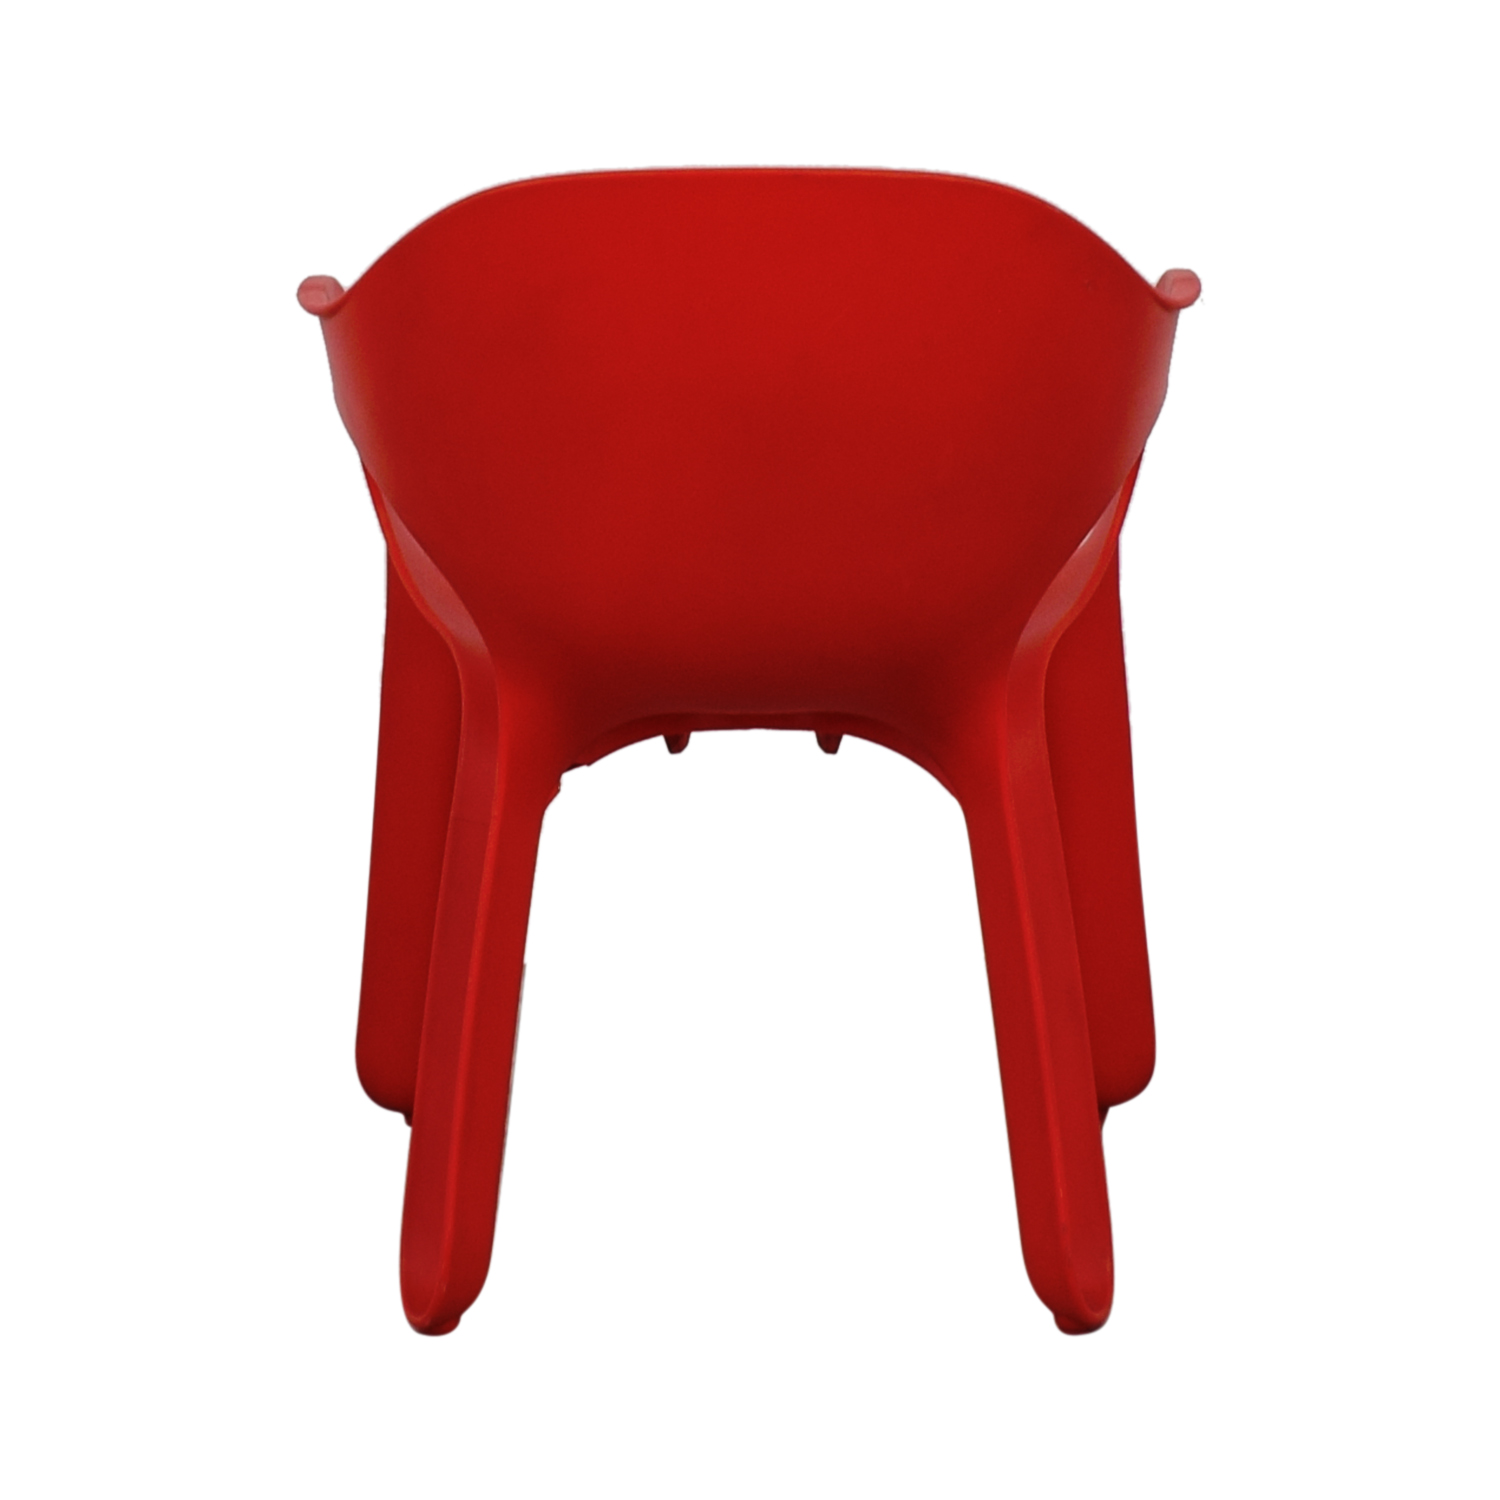 Magic Magic Red Molded Easy Chair by Jerszy Seymour Accent Chairs